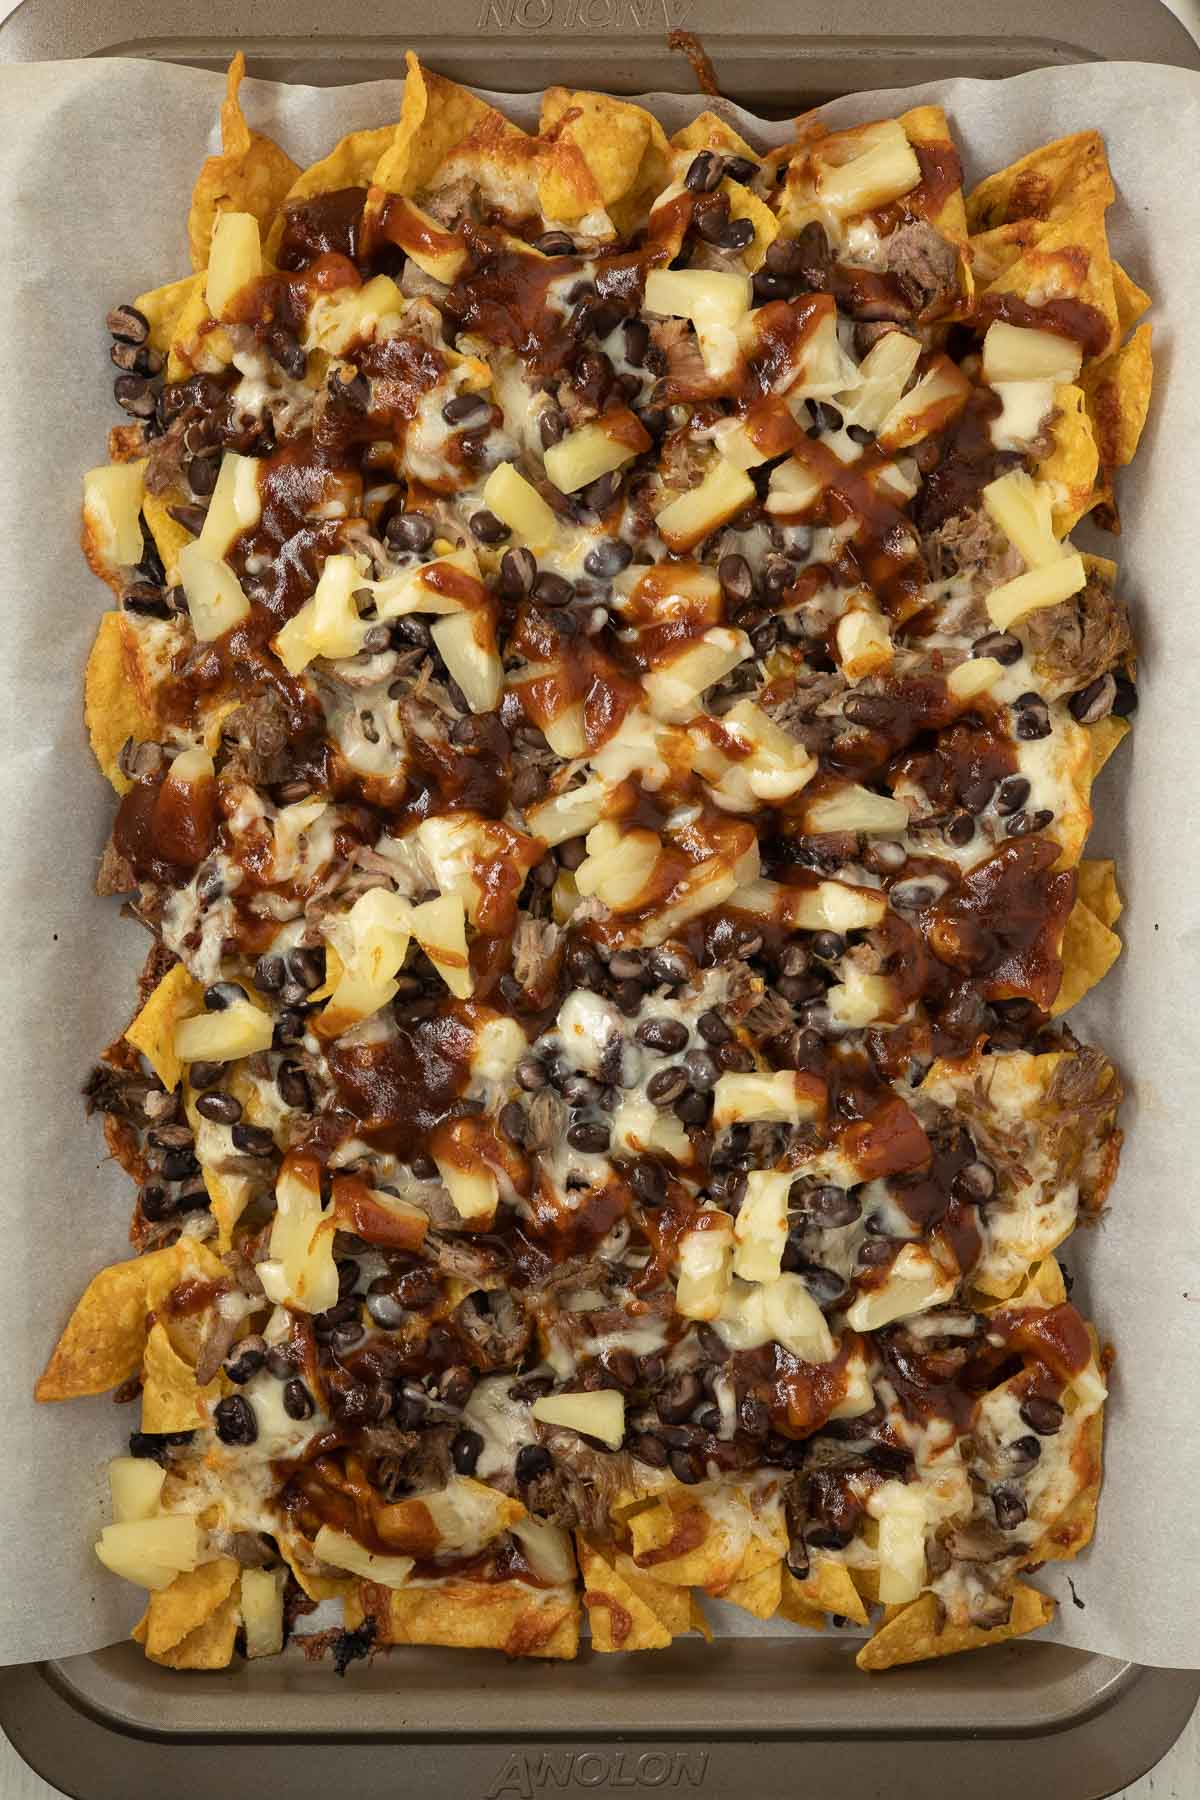 Baked nachos with barbecue sauce.